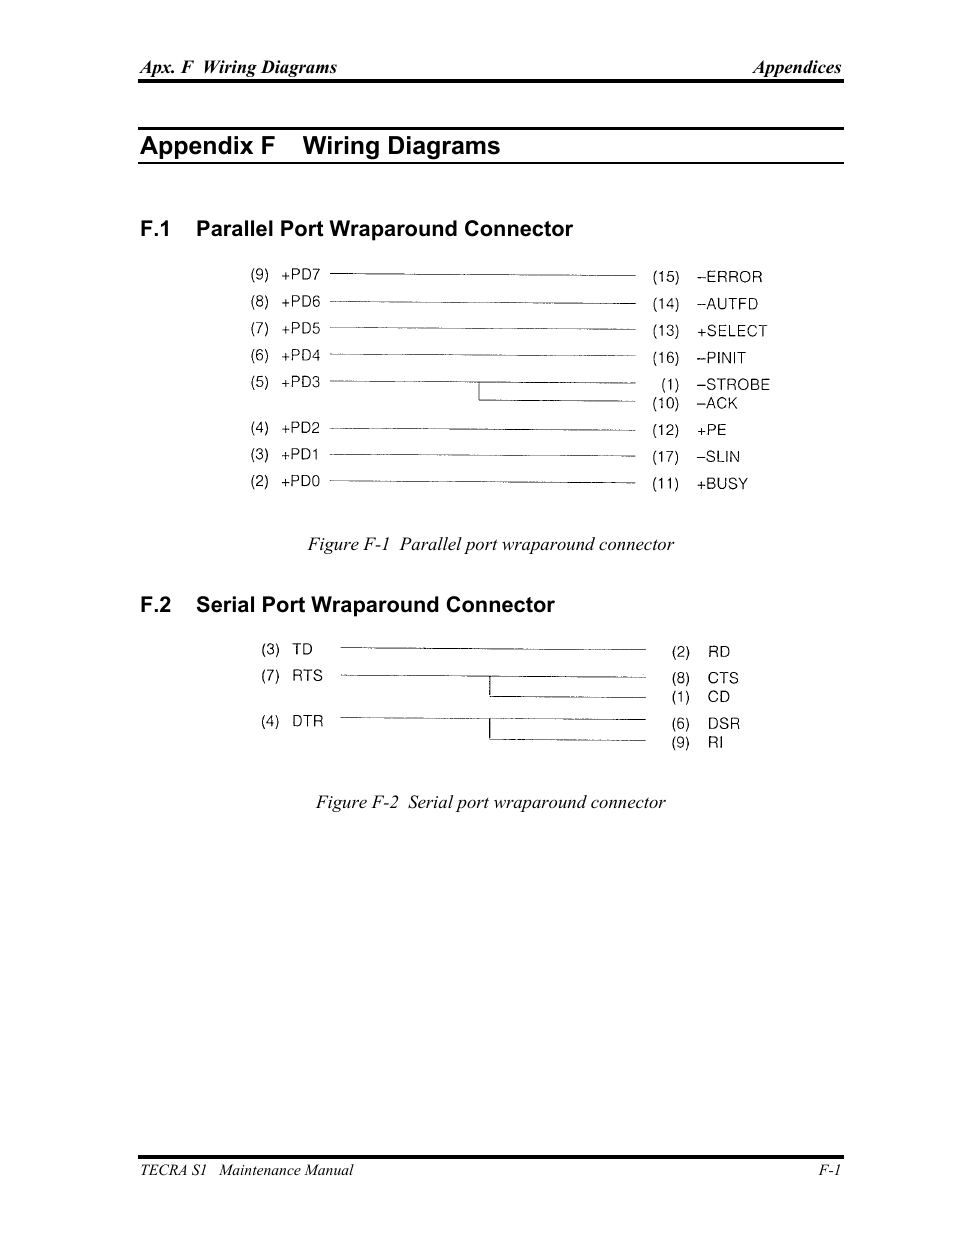 hight resolution of appendix f wiring diagrams parallel port wraparound connector serial port wraparound connector toshiba tecra s1 user manual page 265 268